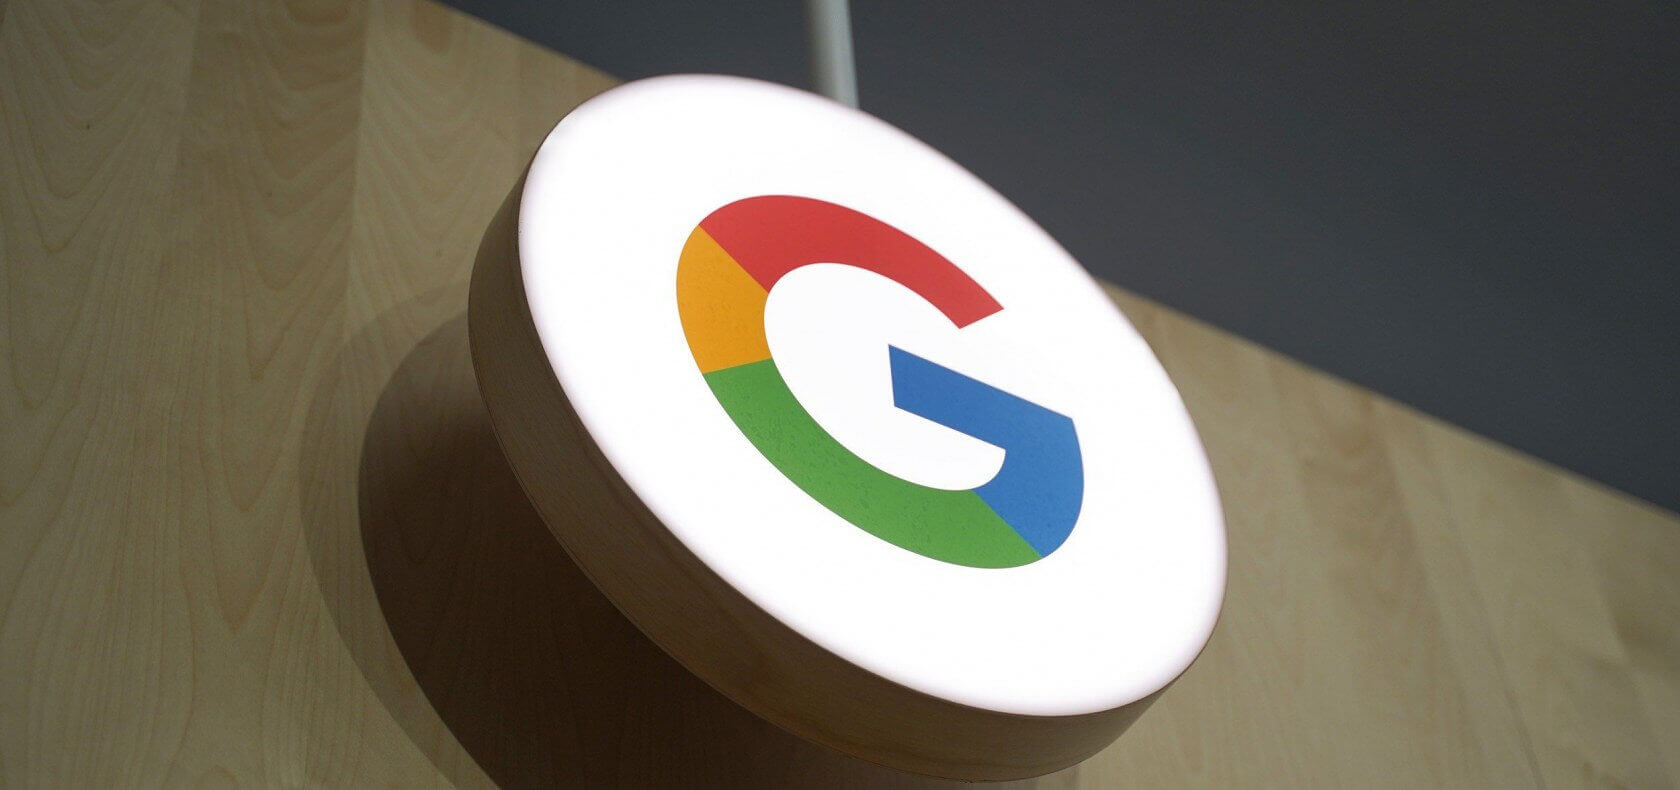 Google will let Android users in Europe choose their default search engine starting in 2020